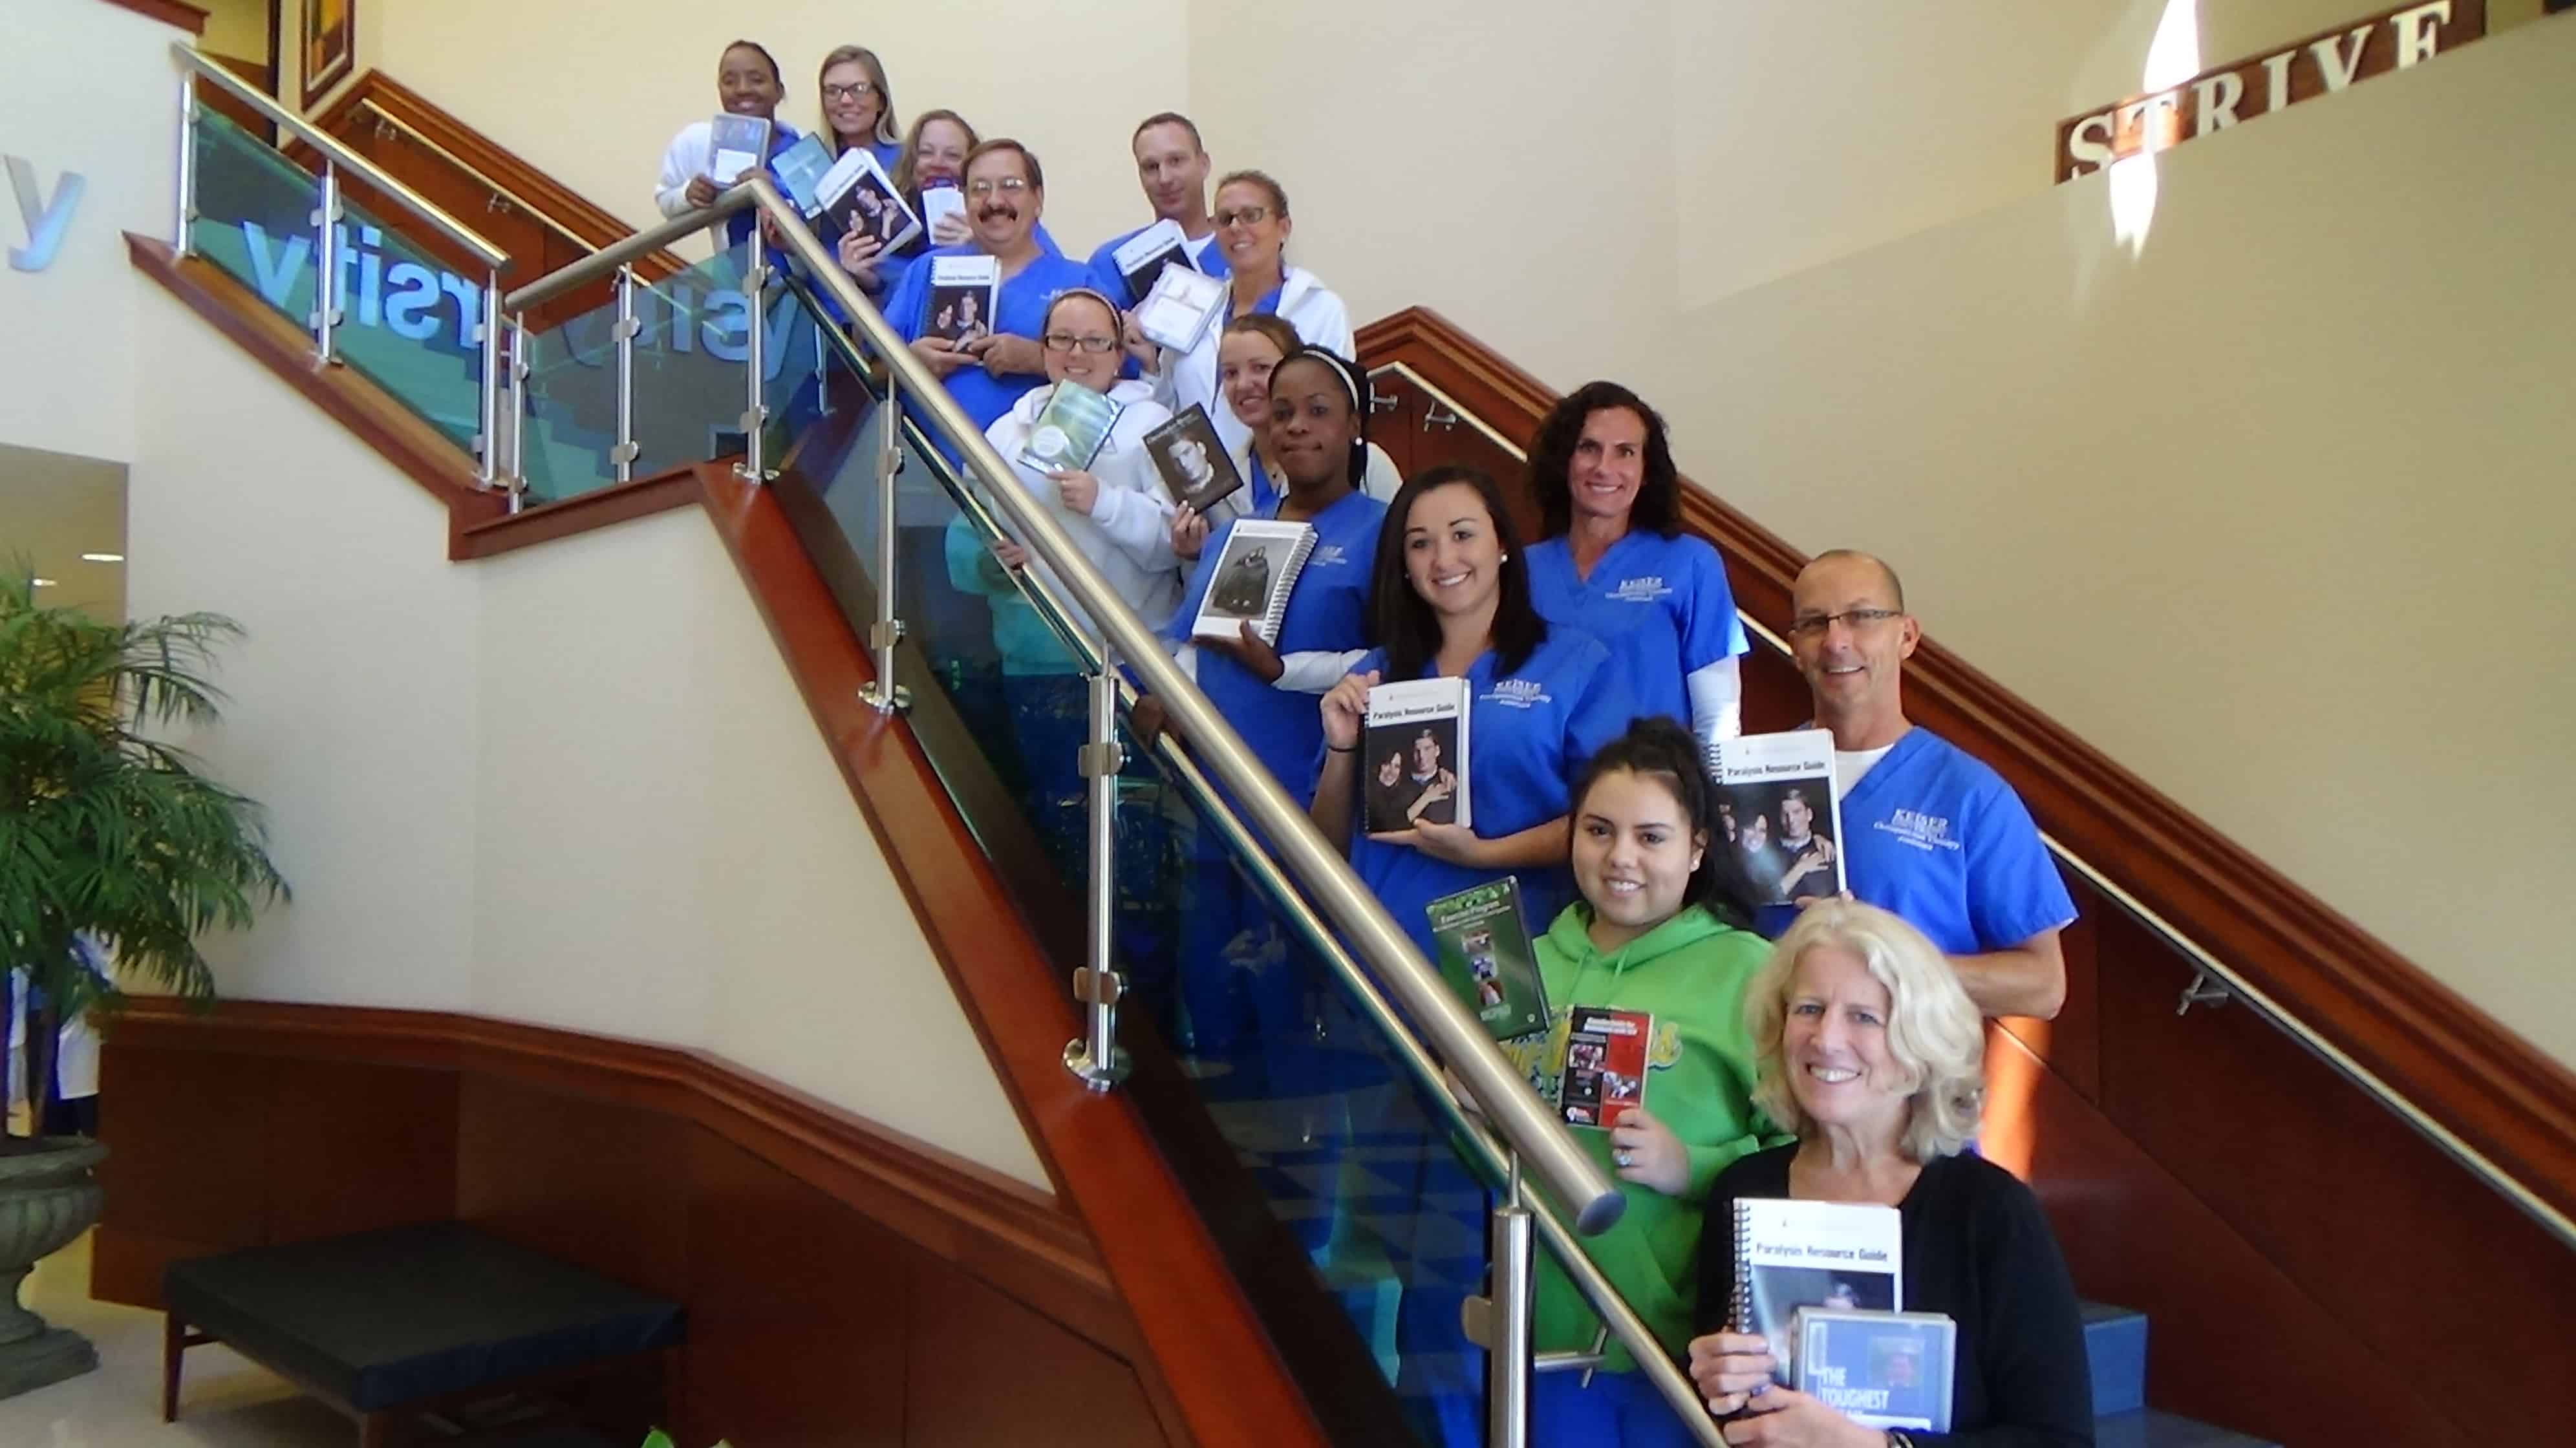 Christopher and Dana Reeves Foundation Provides Resources for Fort Myers OTA Students